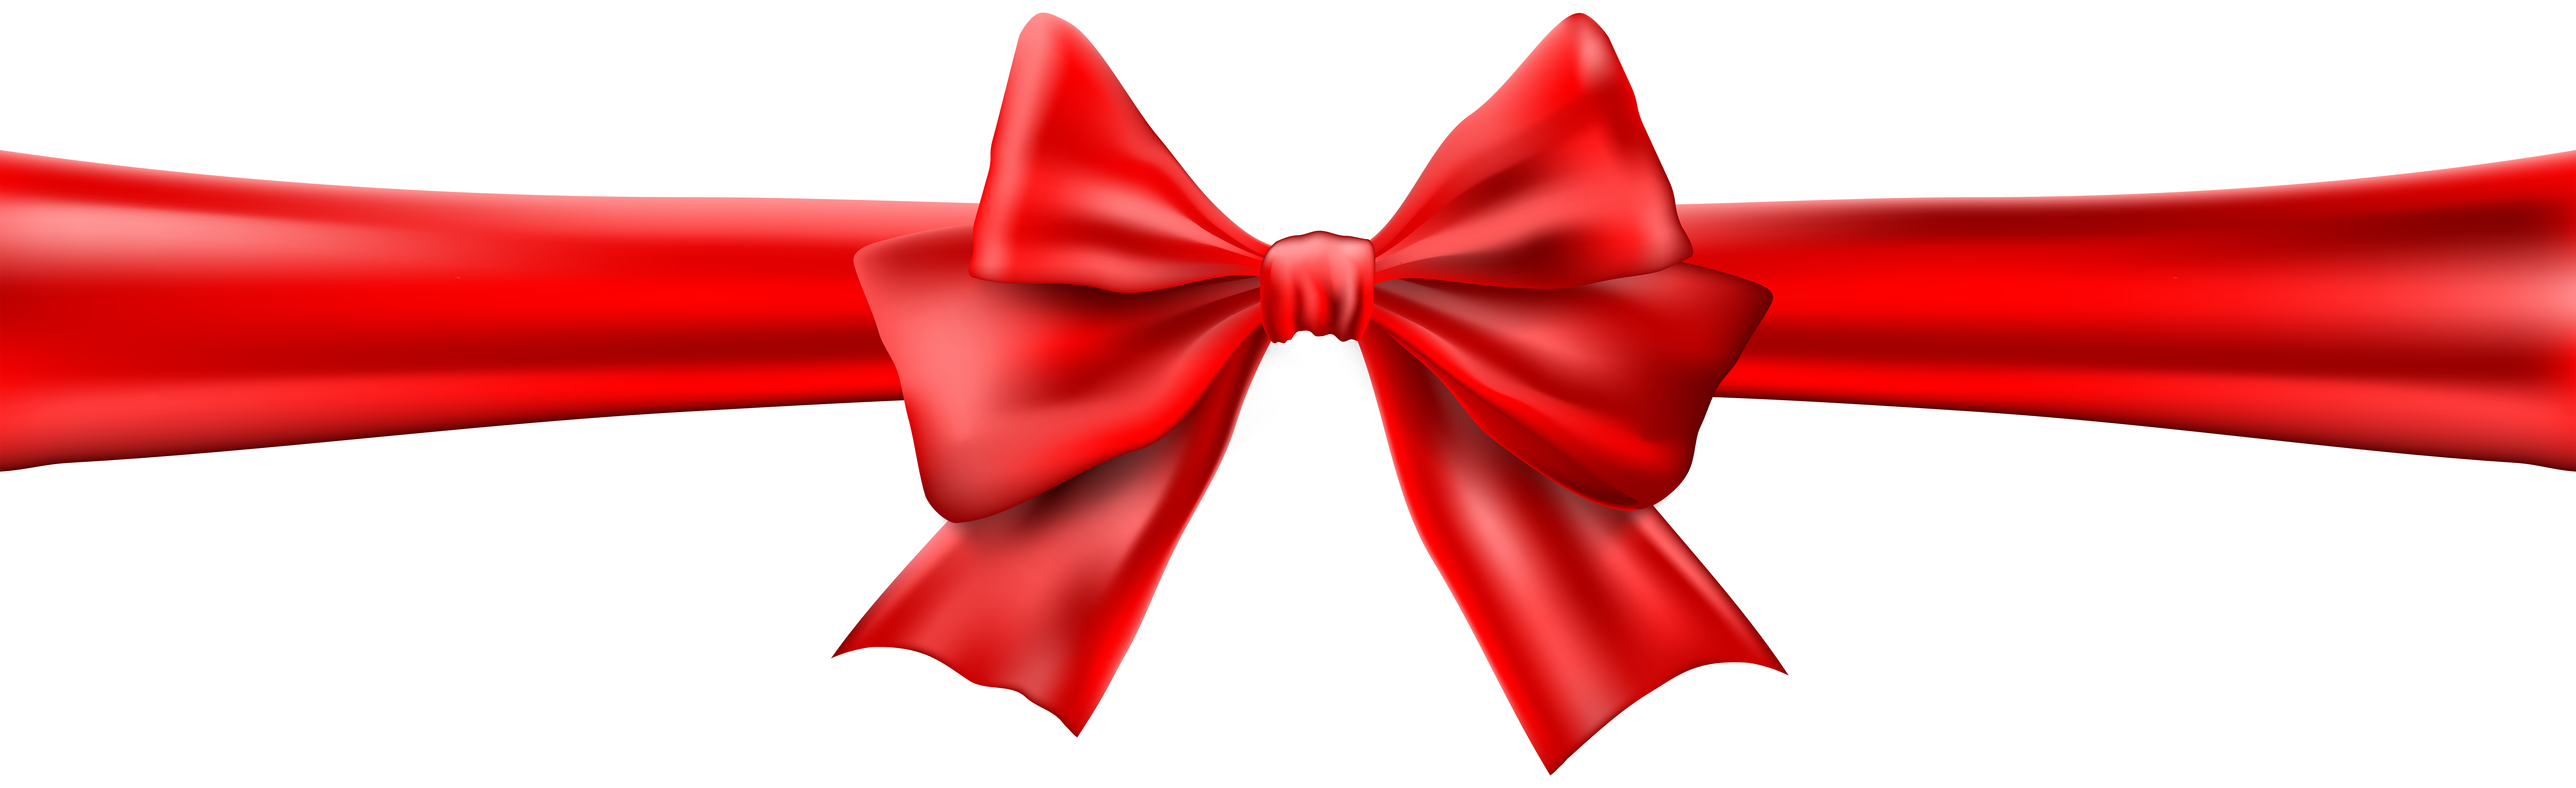 Clipart bows and ribbons jpg royalty free download Red Bow with Ribbon Clip Art Image | Gallery Yopriceville - High ... jpg royalty free download